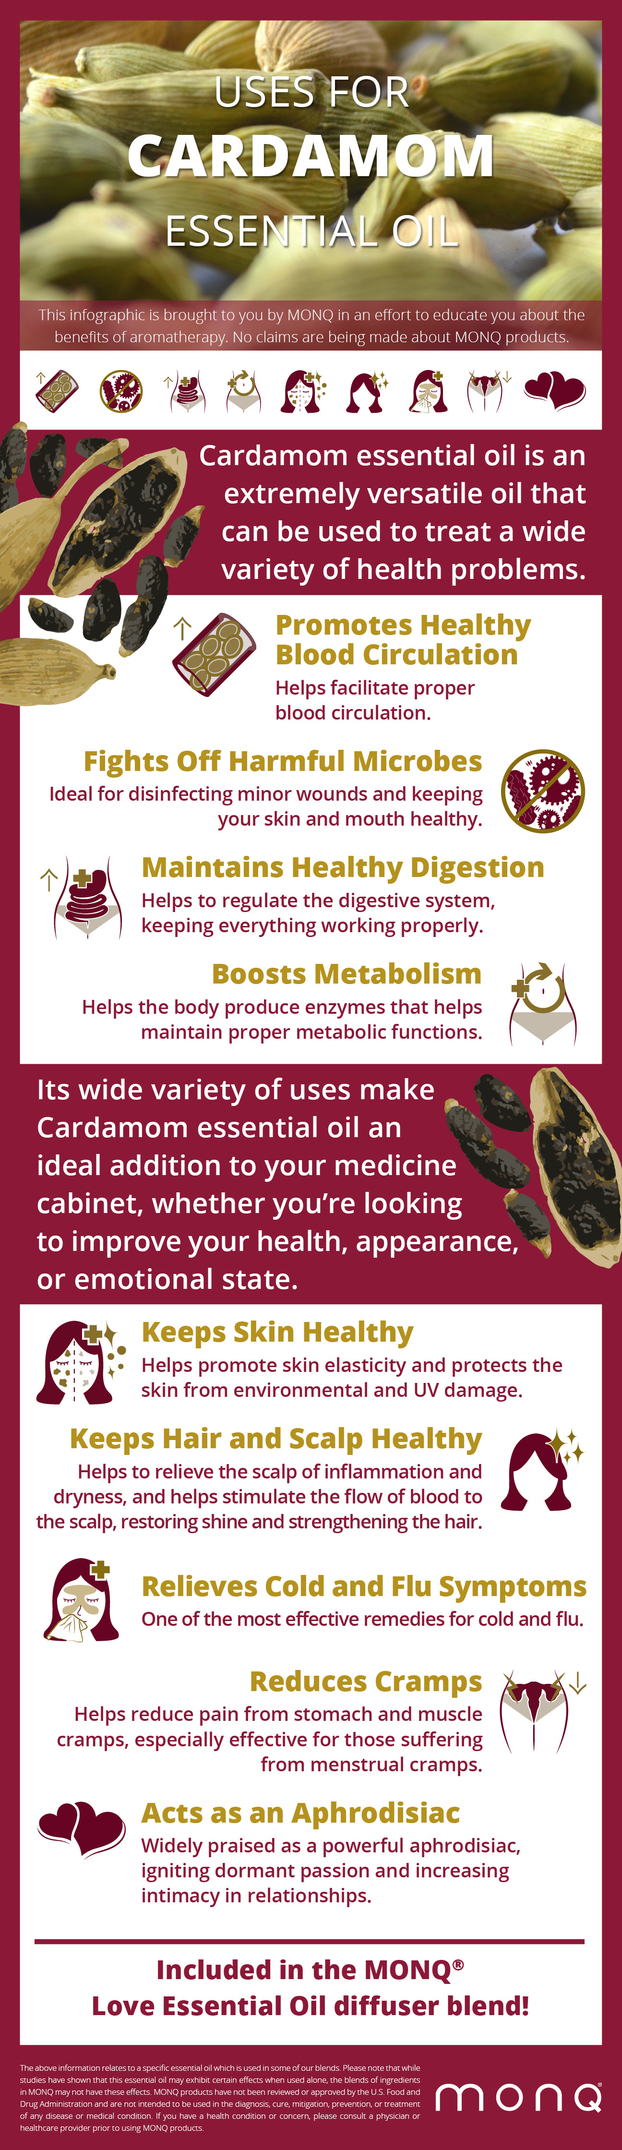 Uses for Cardamom Essential Oil #infographic #Cardamom #infographics #Cardamom Essential Oil #Oil #Health